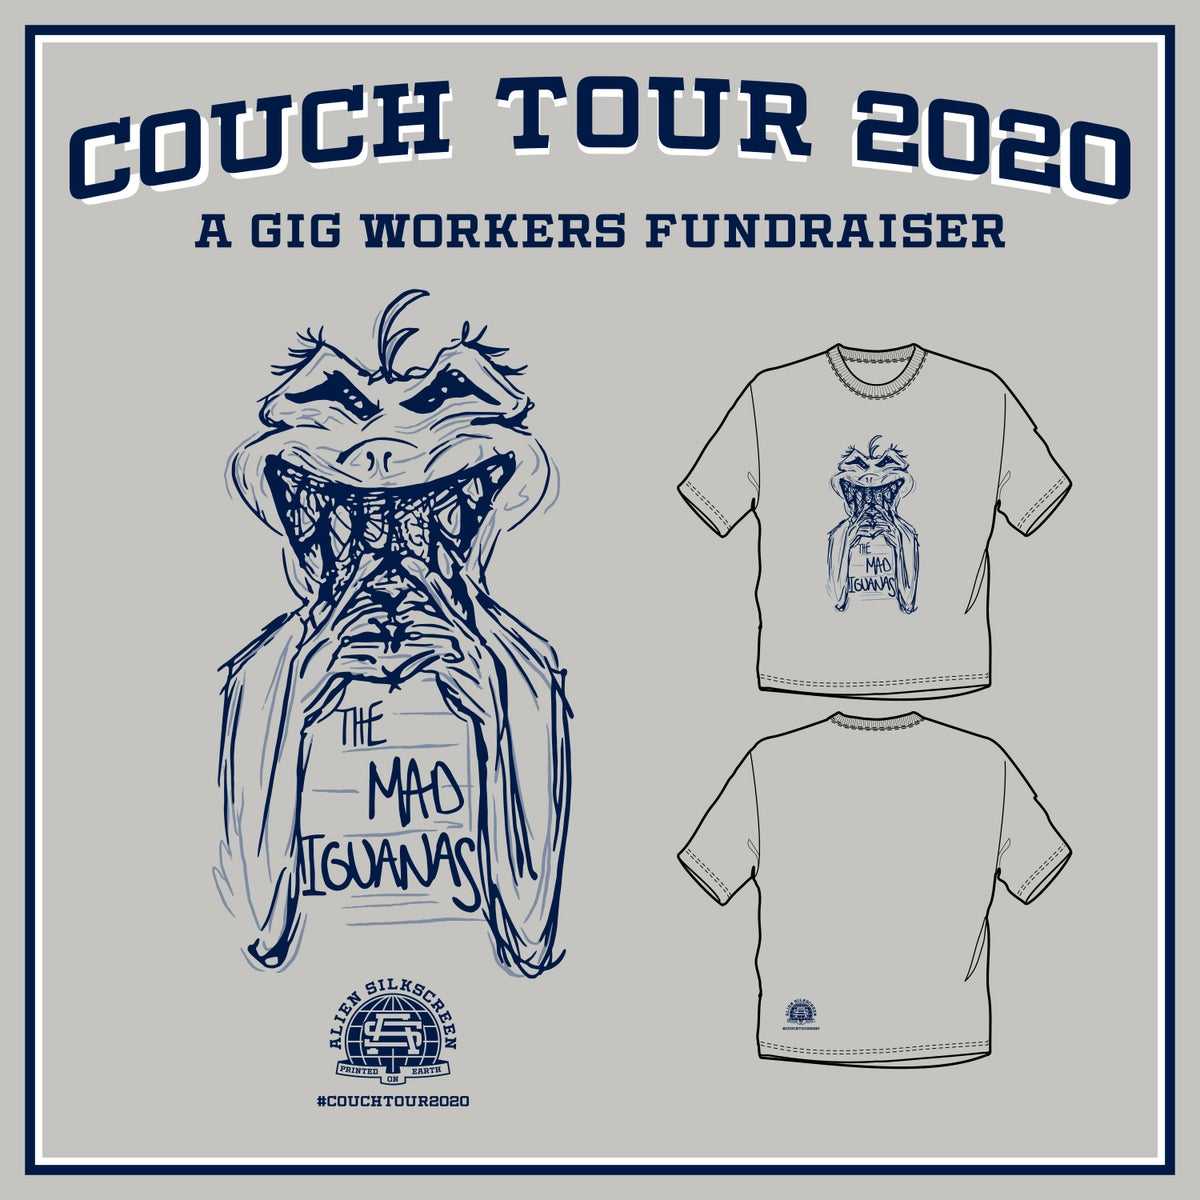 The Mad Iguanas Couch Tour 2020 (Gig Workers Fundraiser)